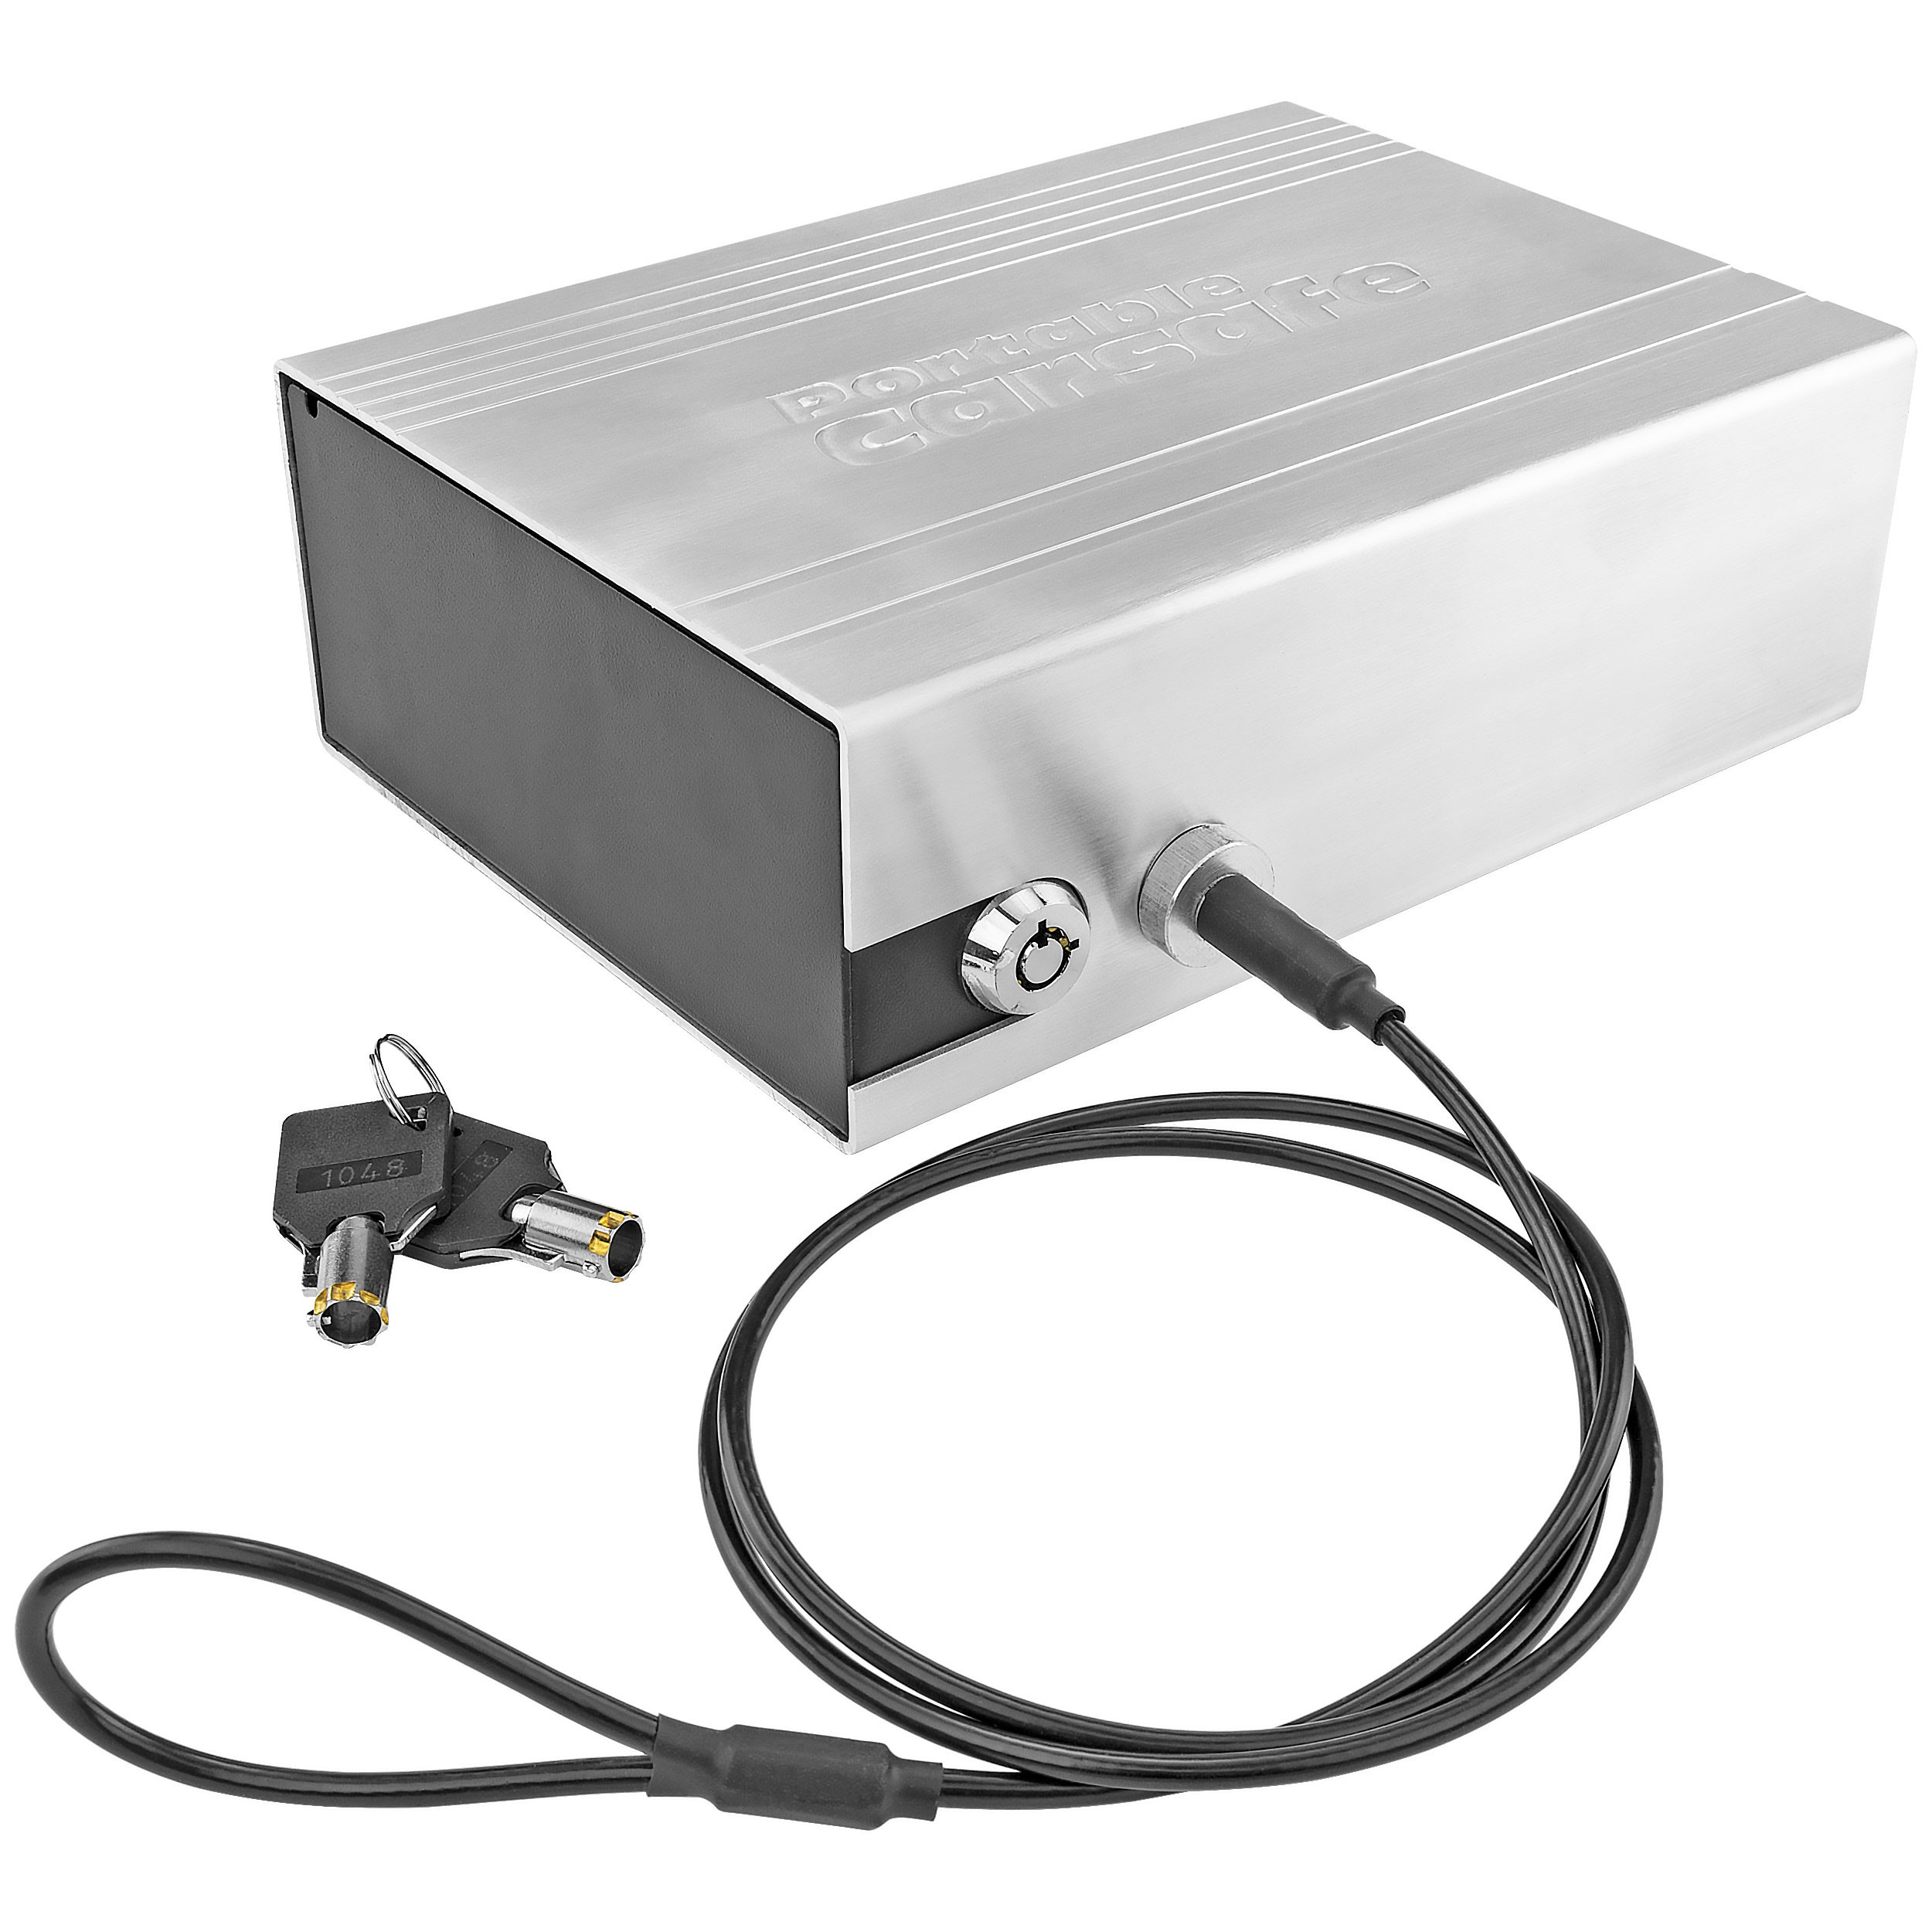 Southern Homewares Portable Handgun Safe, Silver - Aluminum & Steel Carrying Case for Car, Boat, Office, or Home